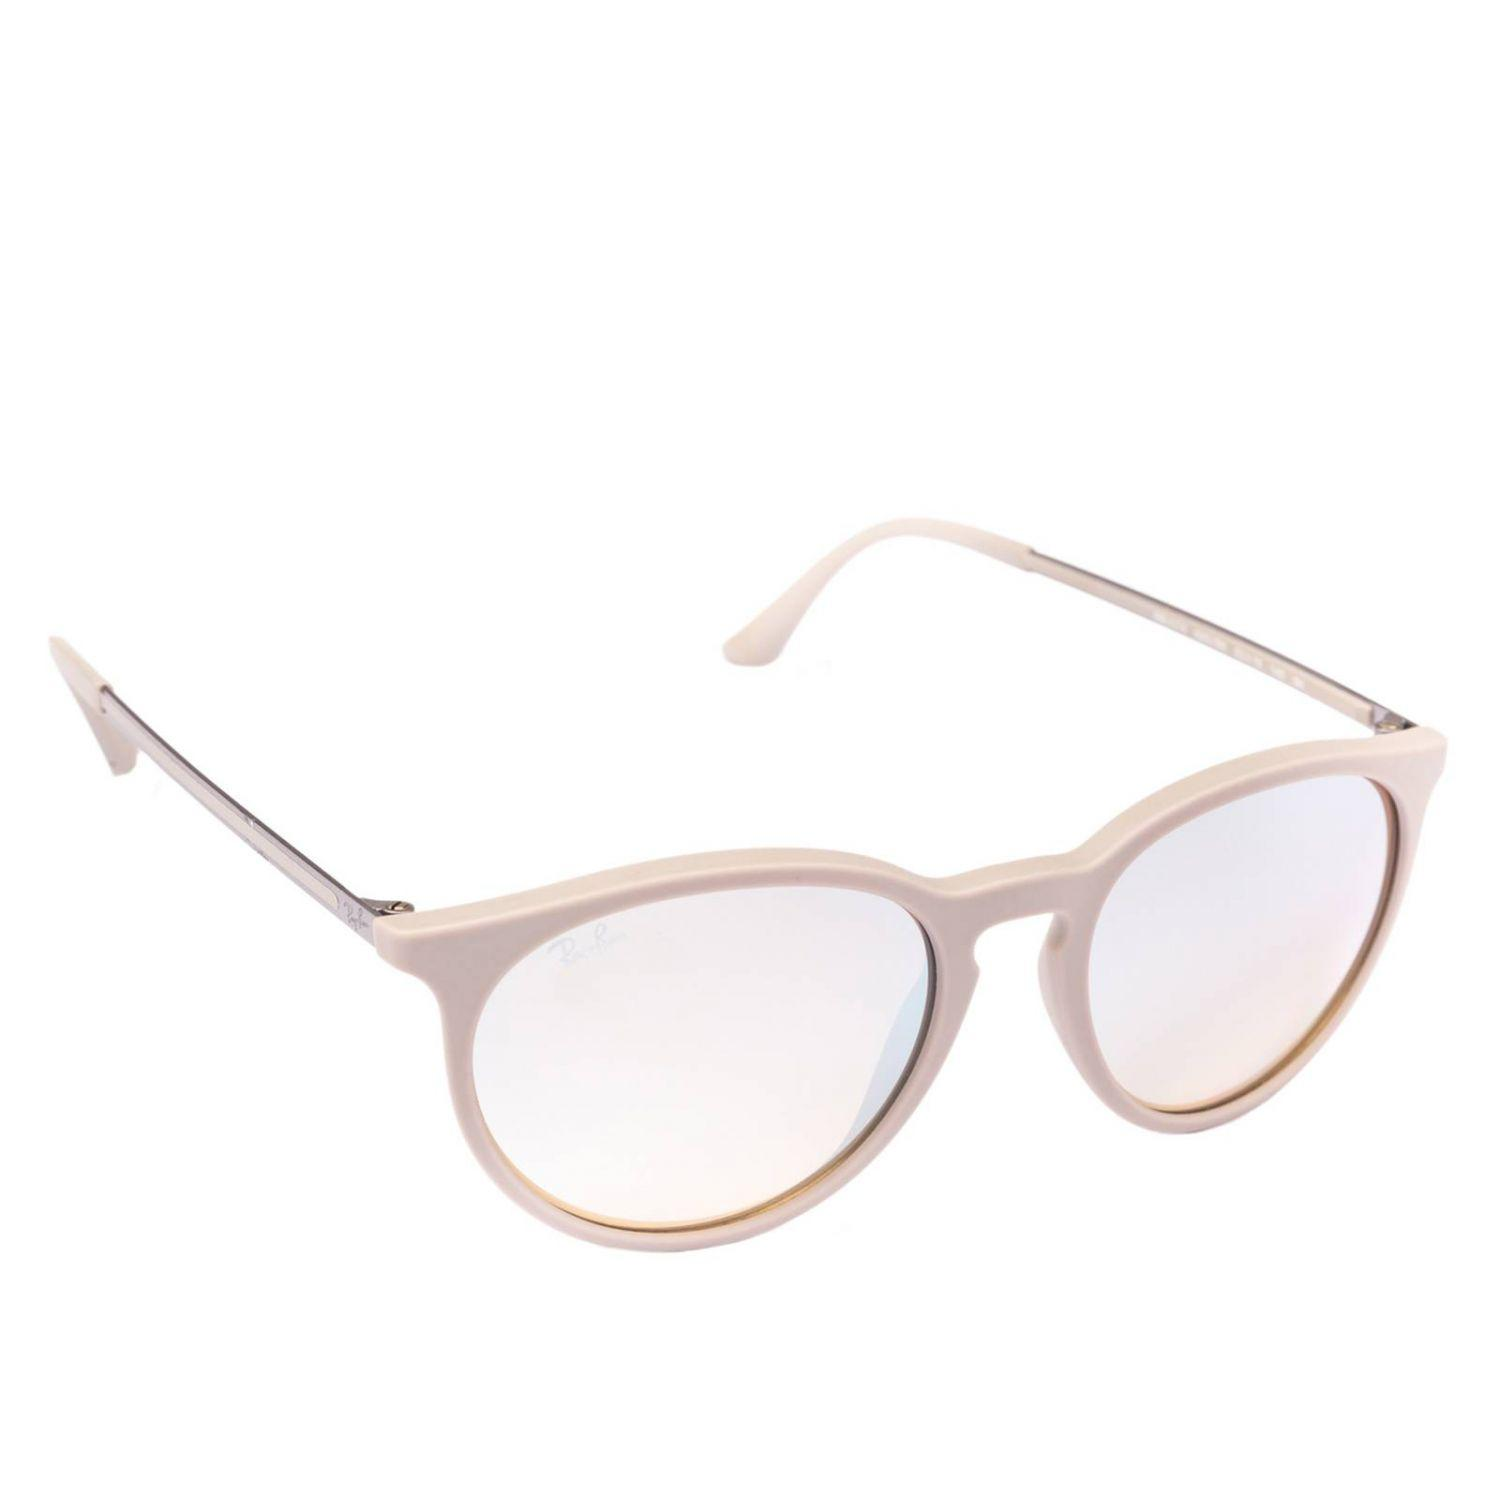 a2cd2c149c Lyst - Ray-Ban Glasses Eyewear Men in Natural for Men